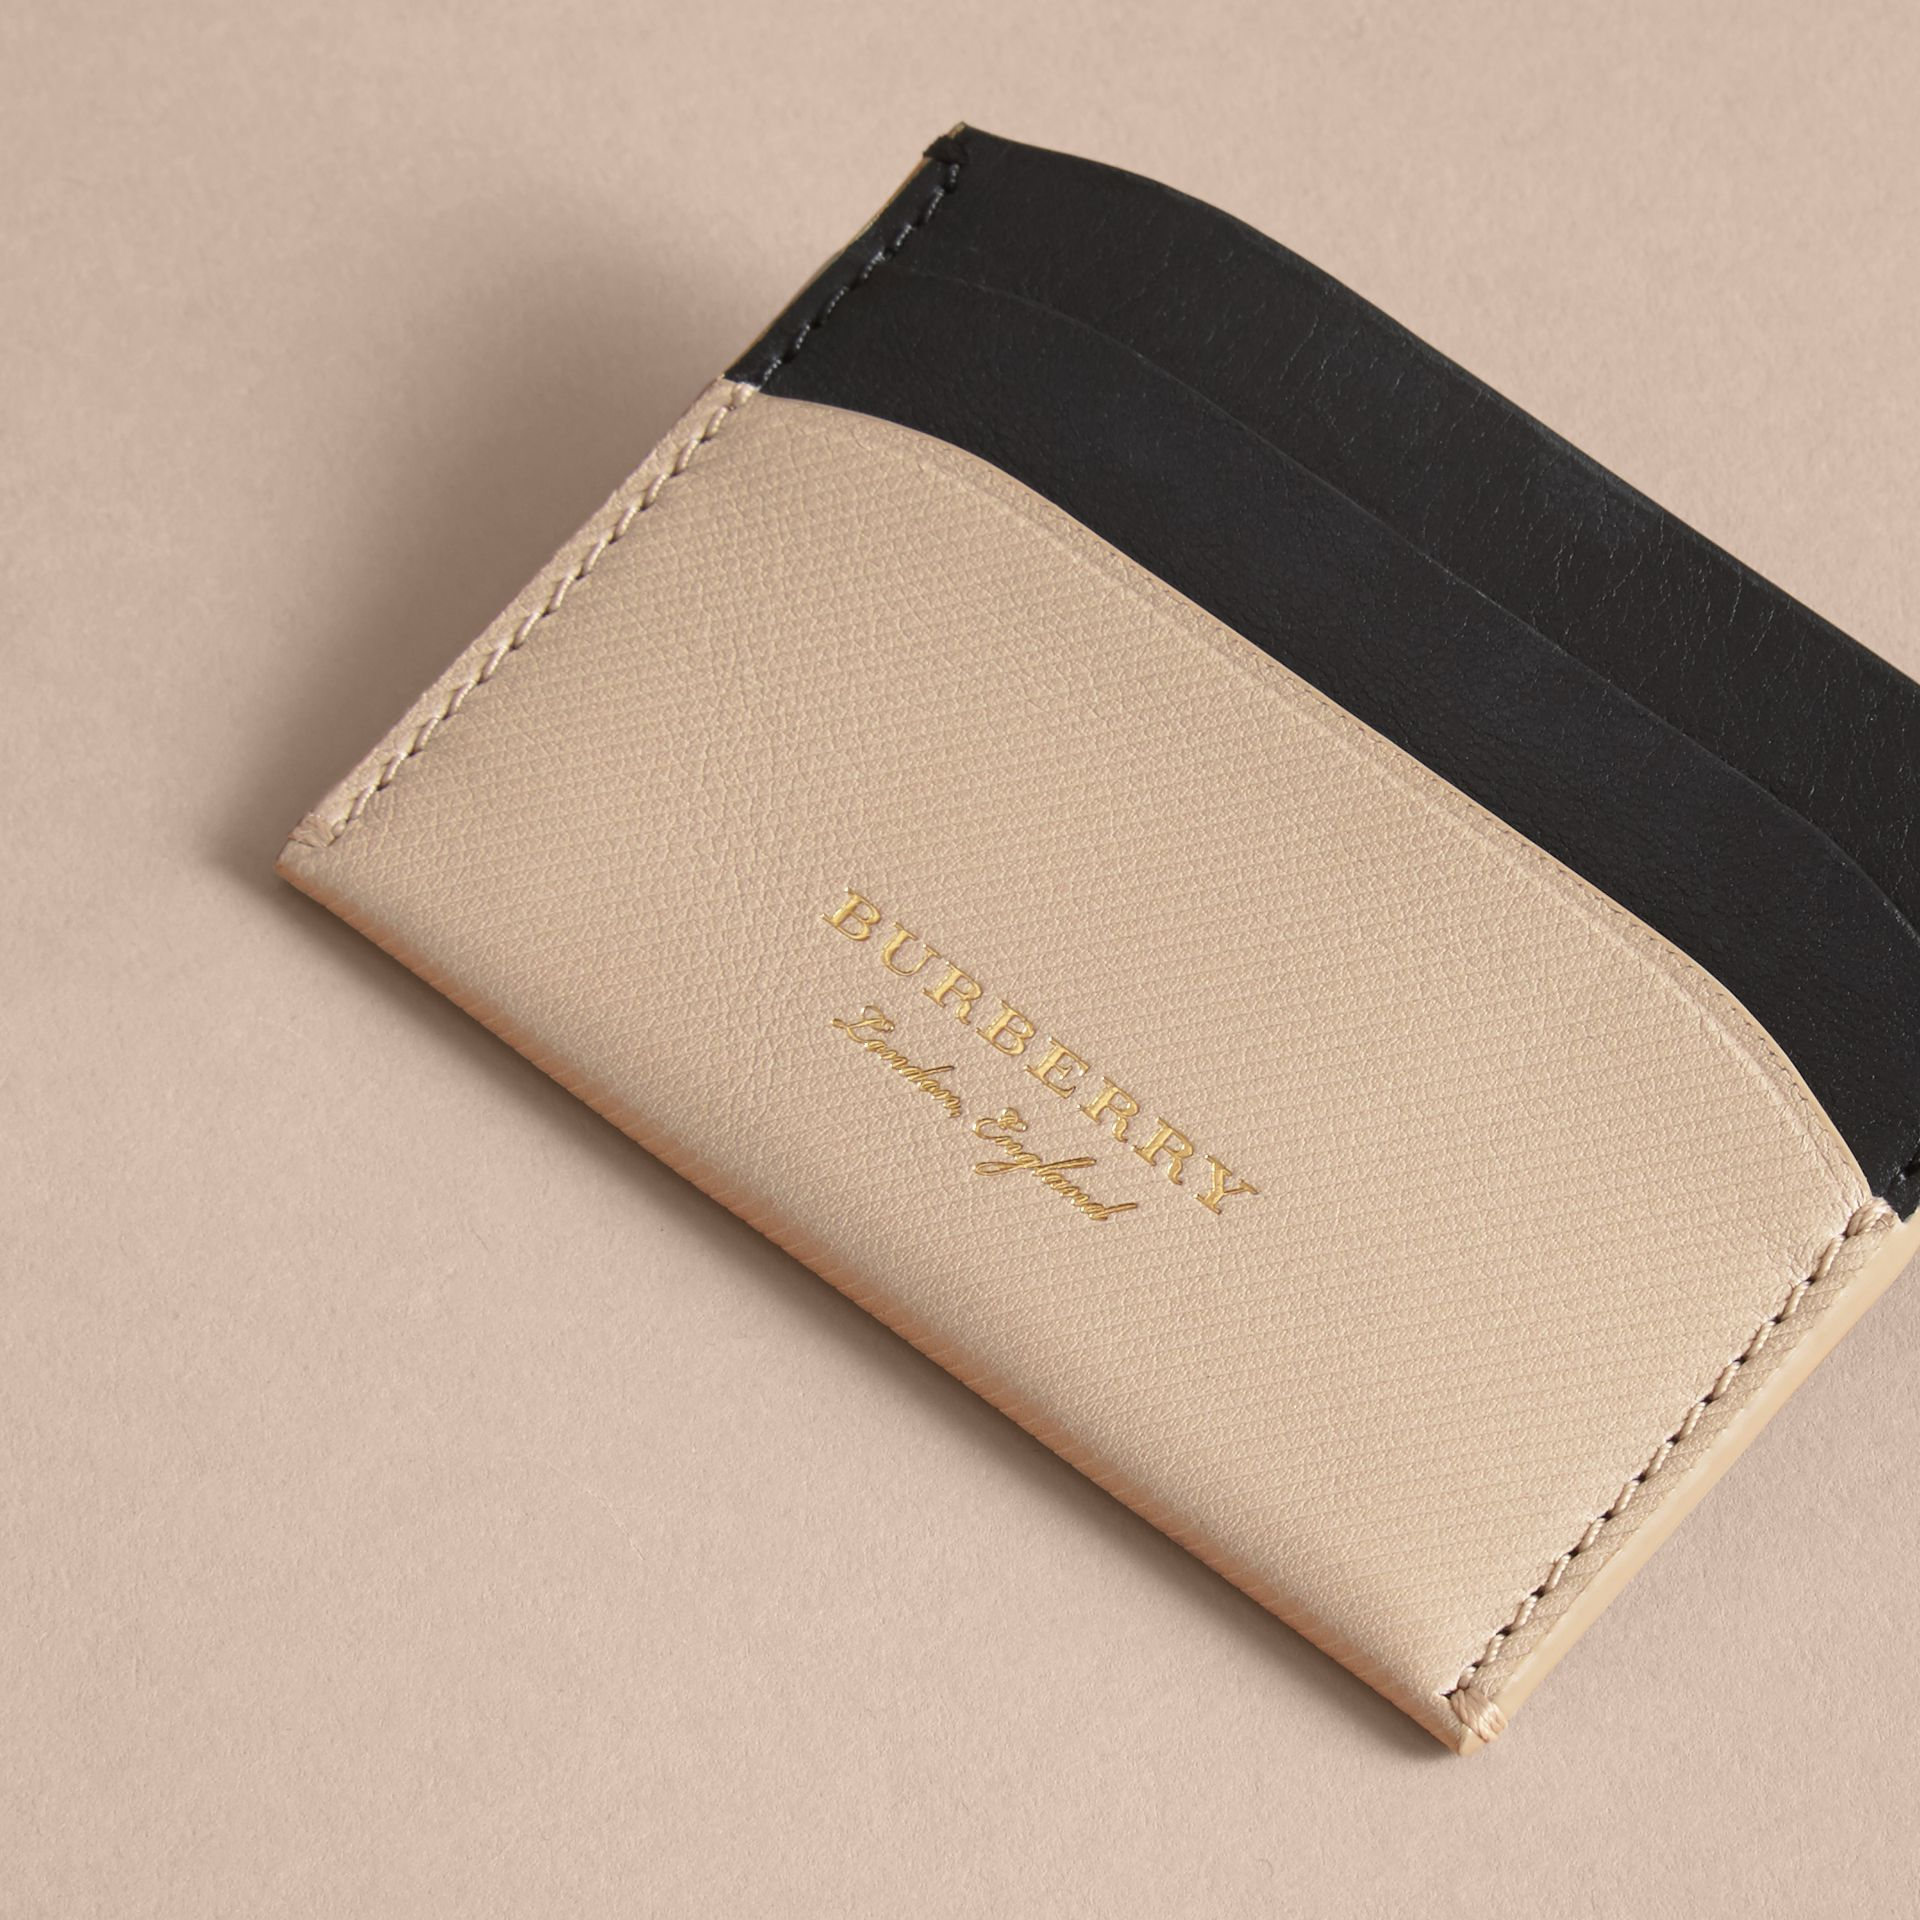 Two-tone Trench Leather Card Case in Limestone/ Black - Women | Burberry - gallery image 3